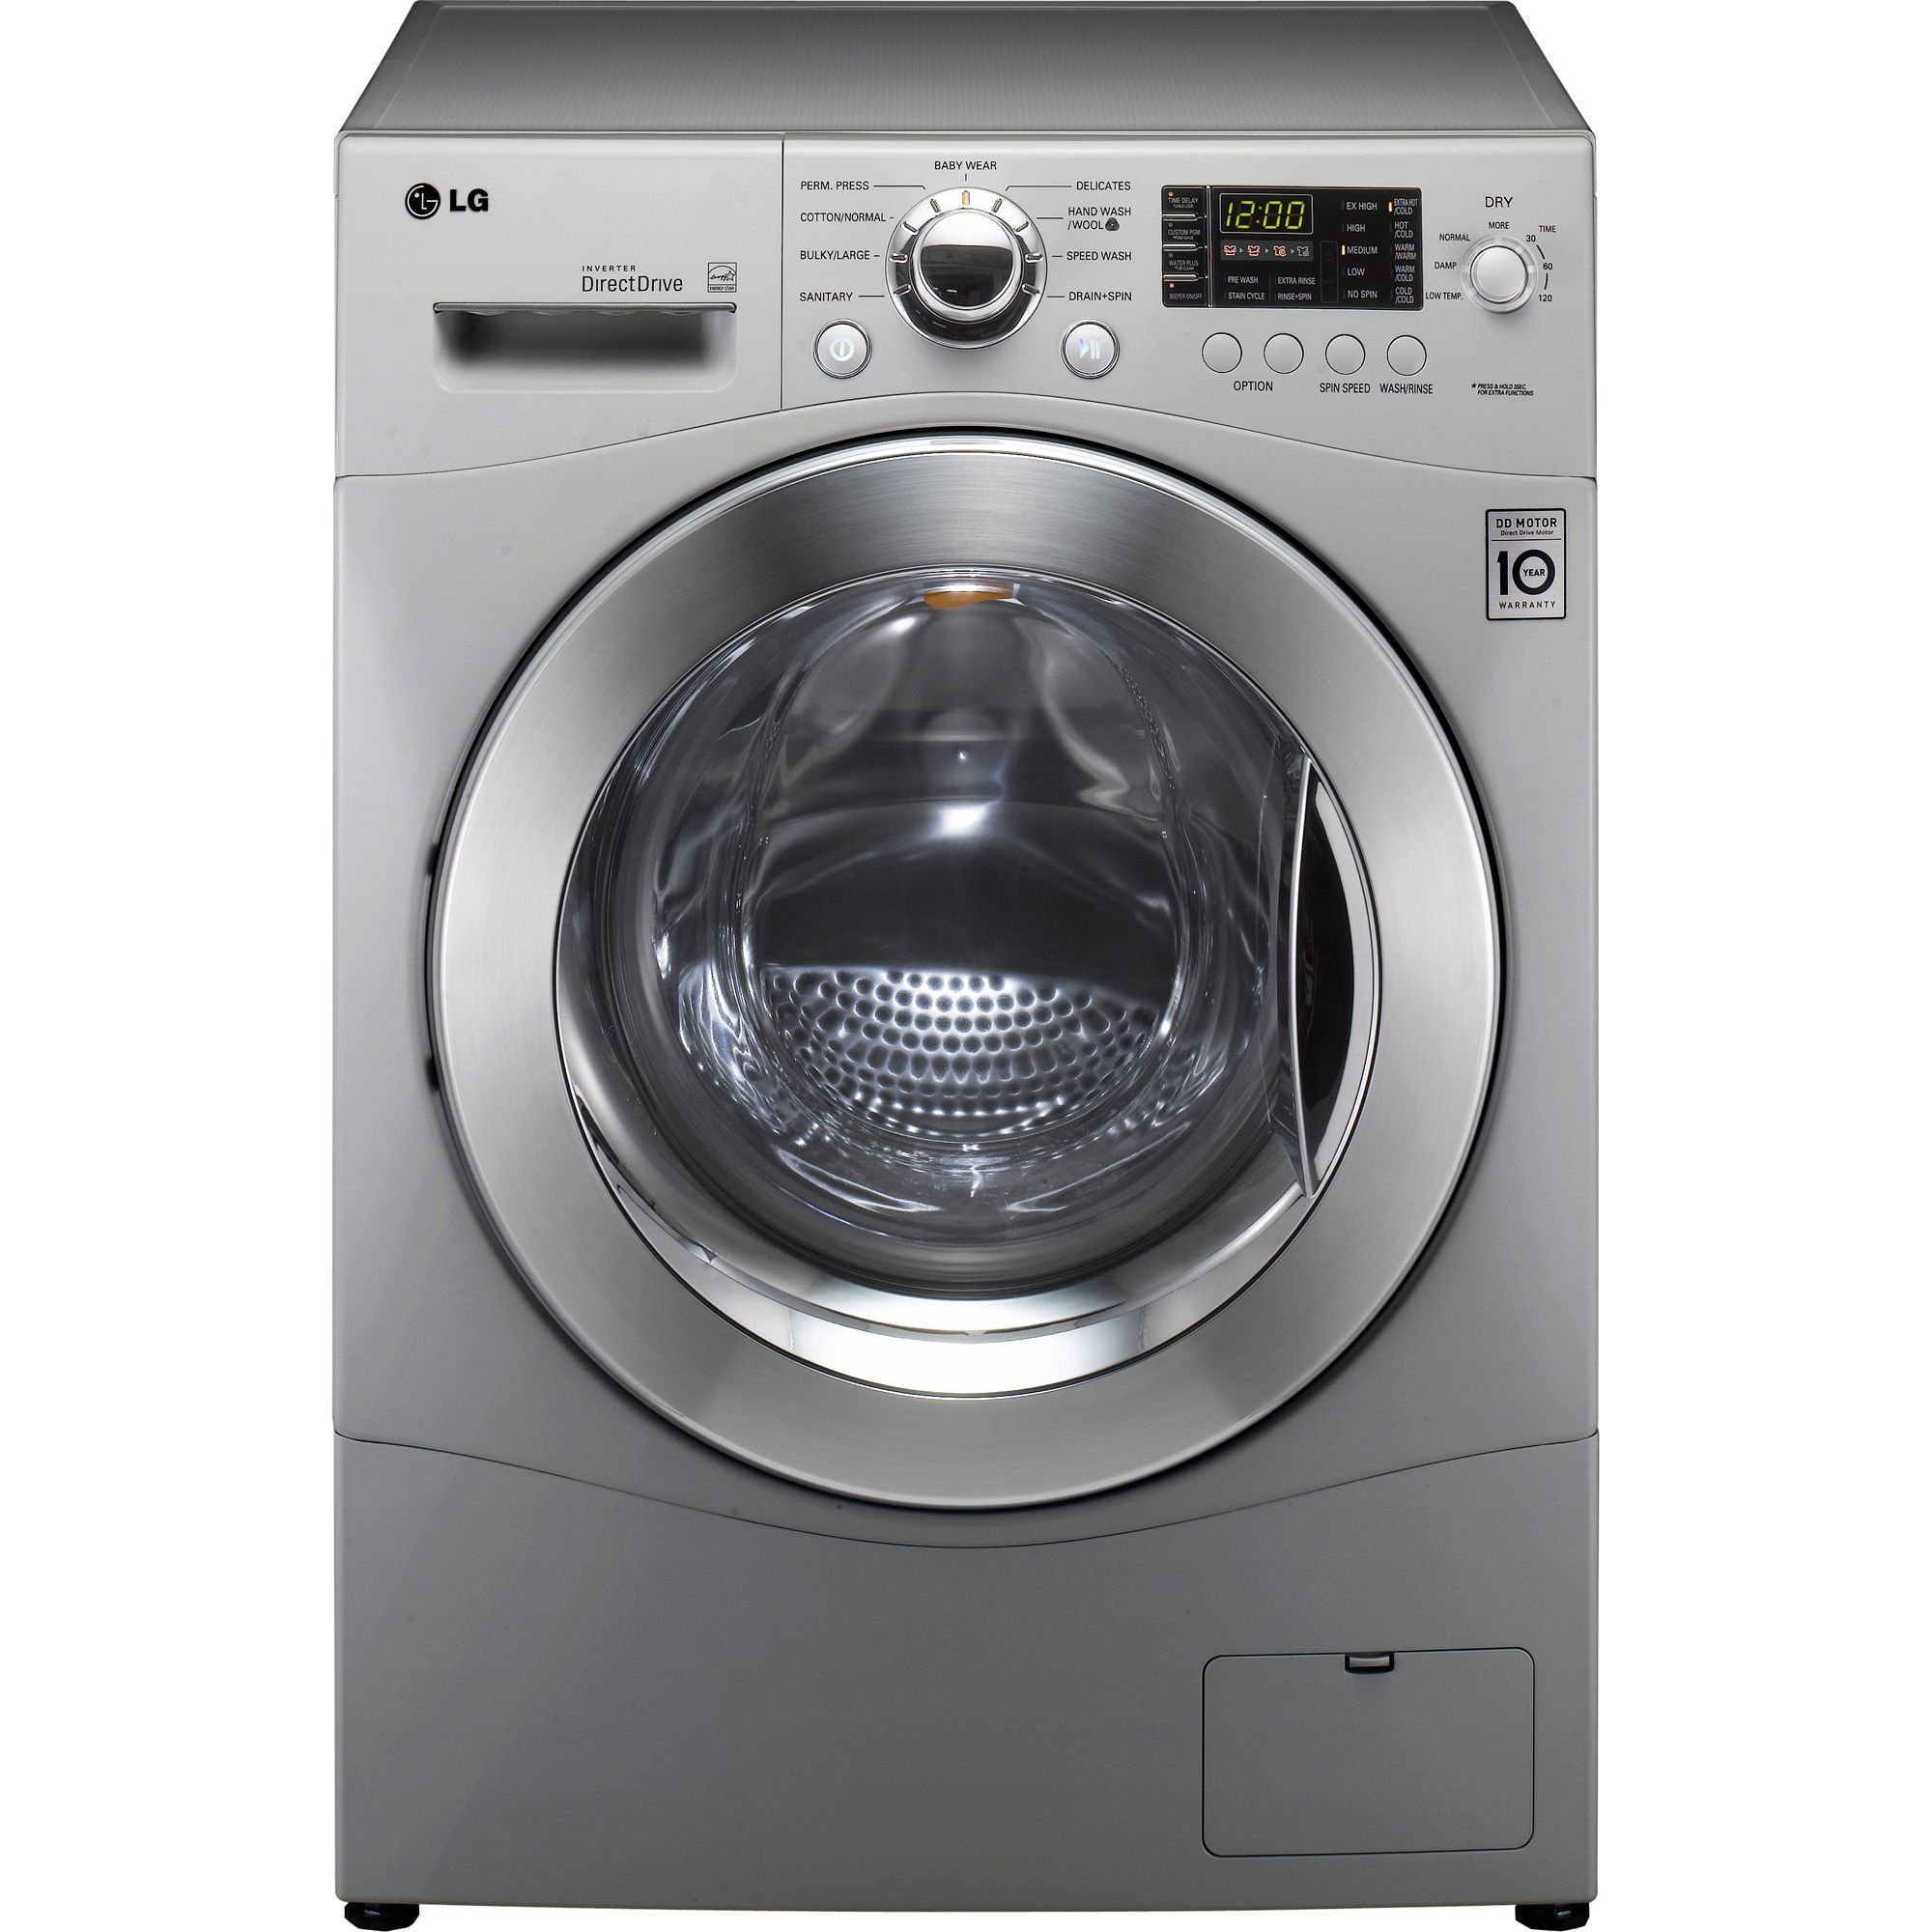 2-3-cu-ft-All-in-One-Washer-and-Dryer-Metallic